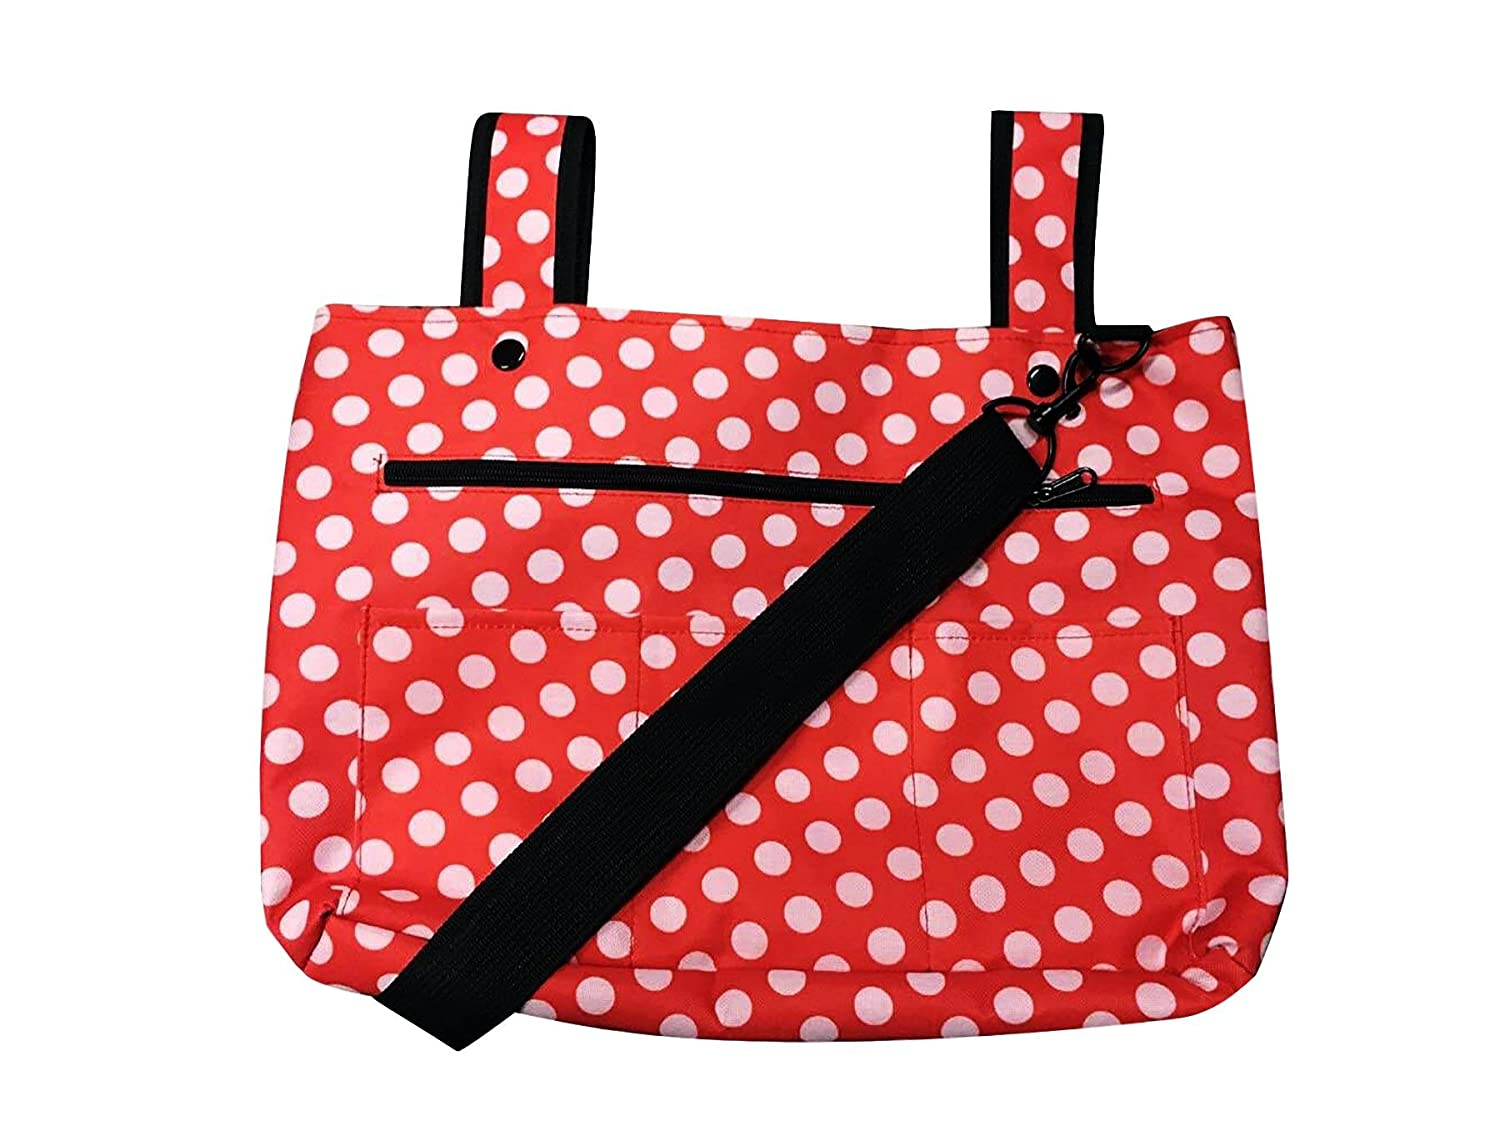 Snapster Snap On Tote Bag for Walker, Stroller Or Shopping Cart (Red/White Dot) Two Lumps of Sugar